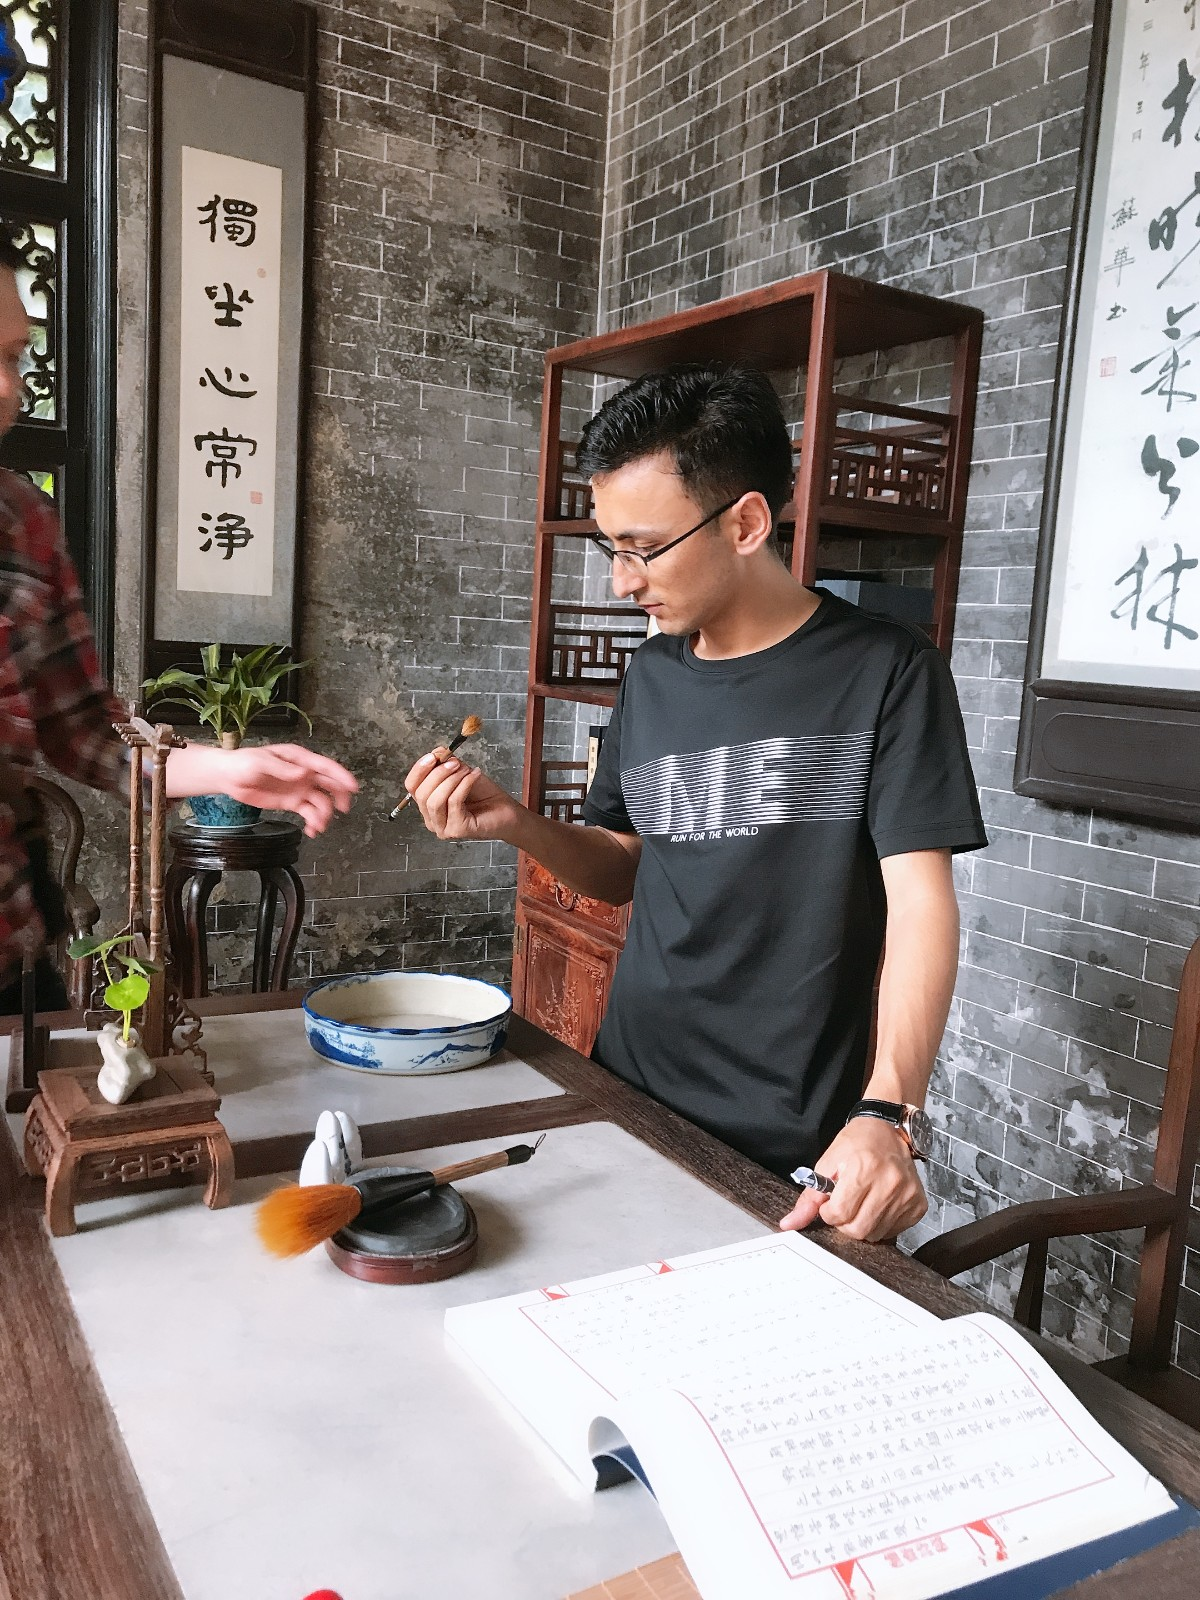 Abbas Zaheer is learning Chinese calligraphy on the spot .jpg